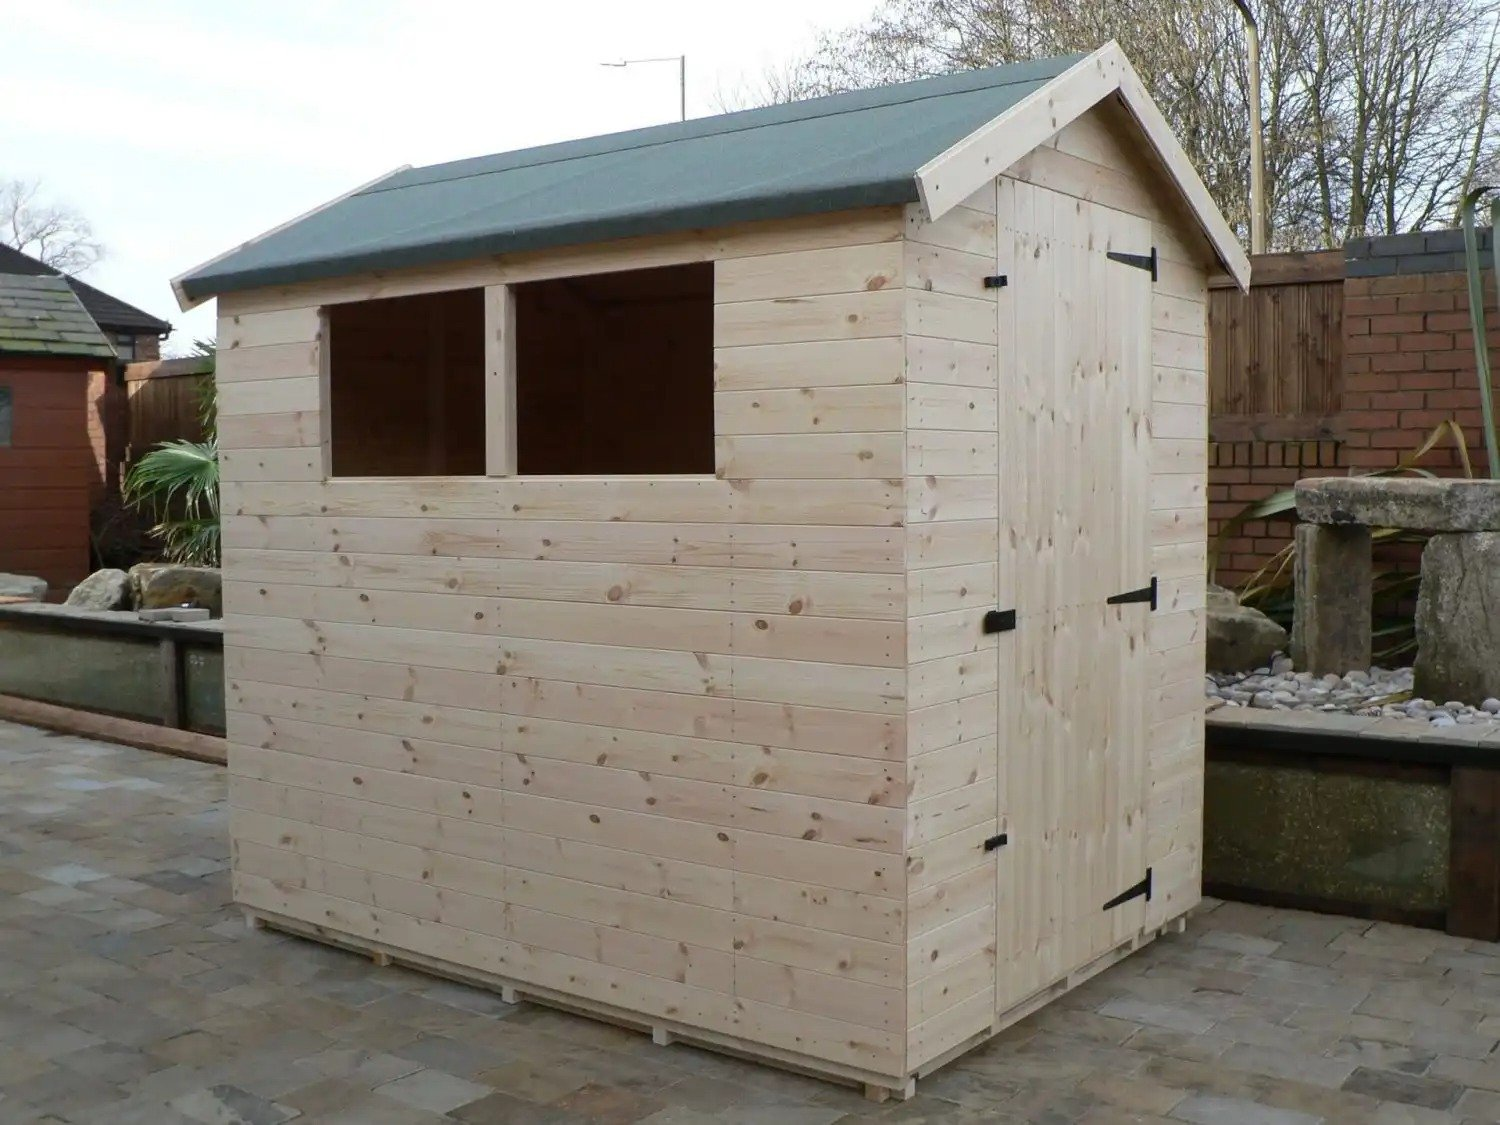 7' X 5' Apex Shed Full Size Windows